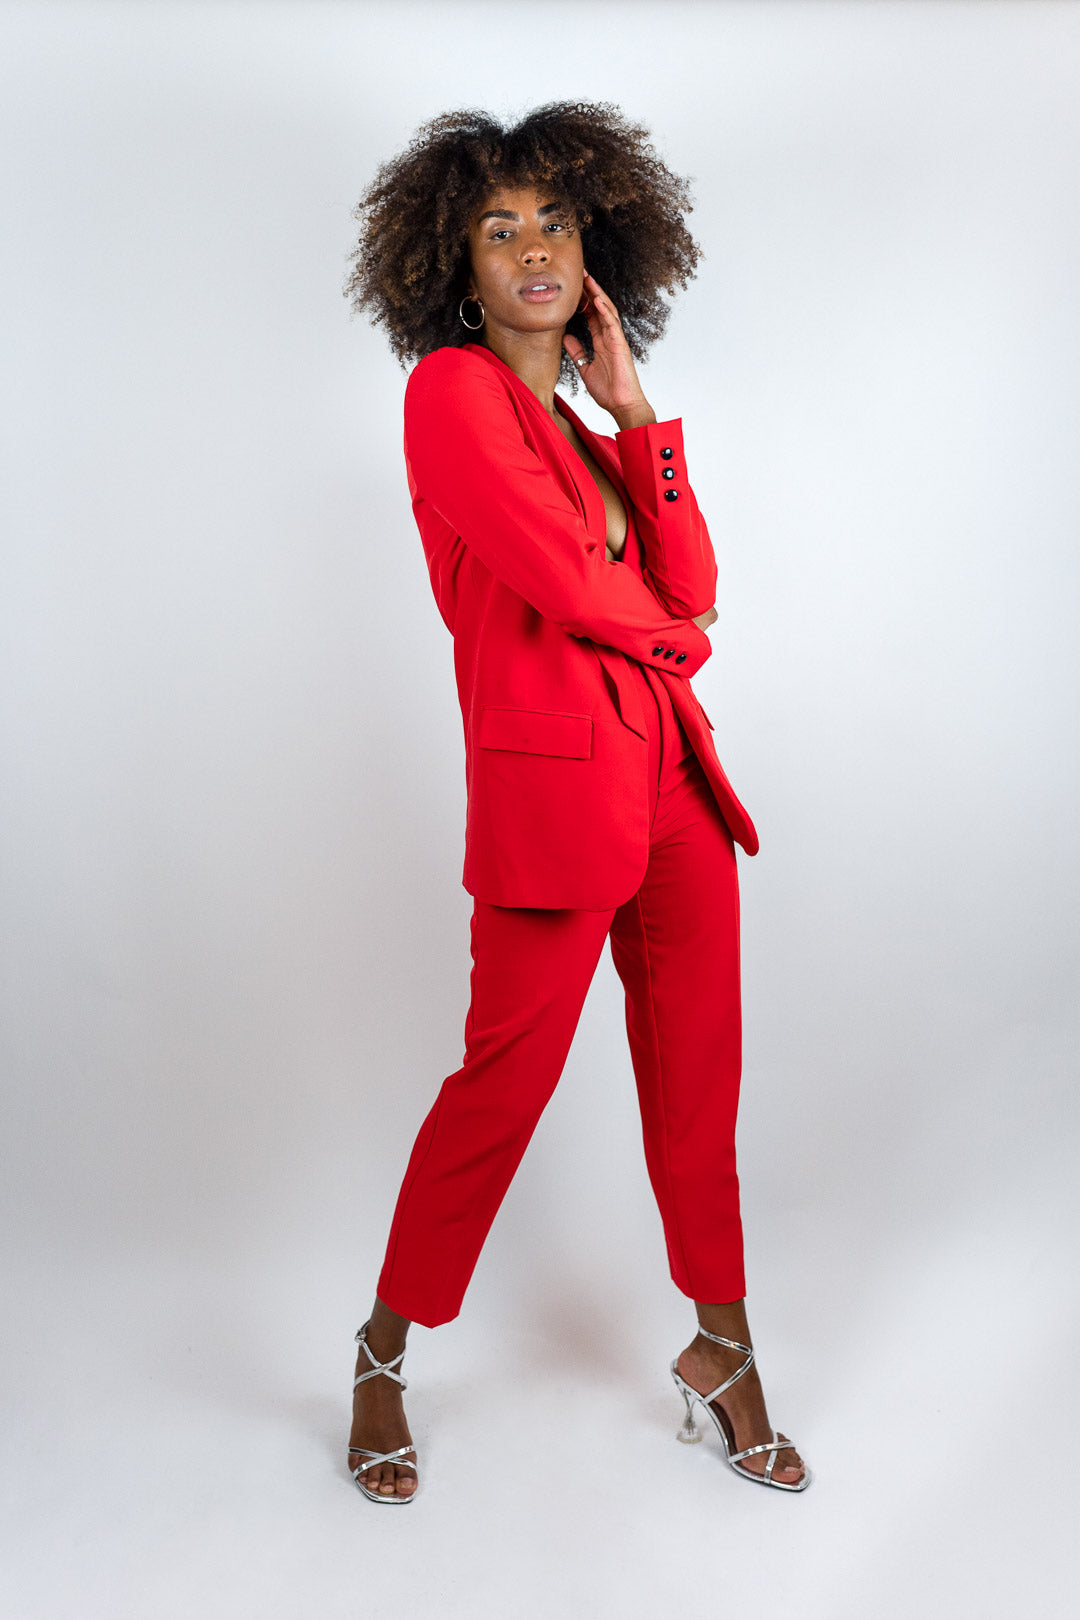 female model in in red costume for fashion shoot